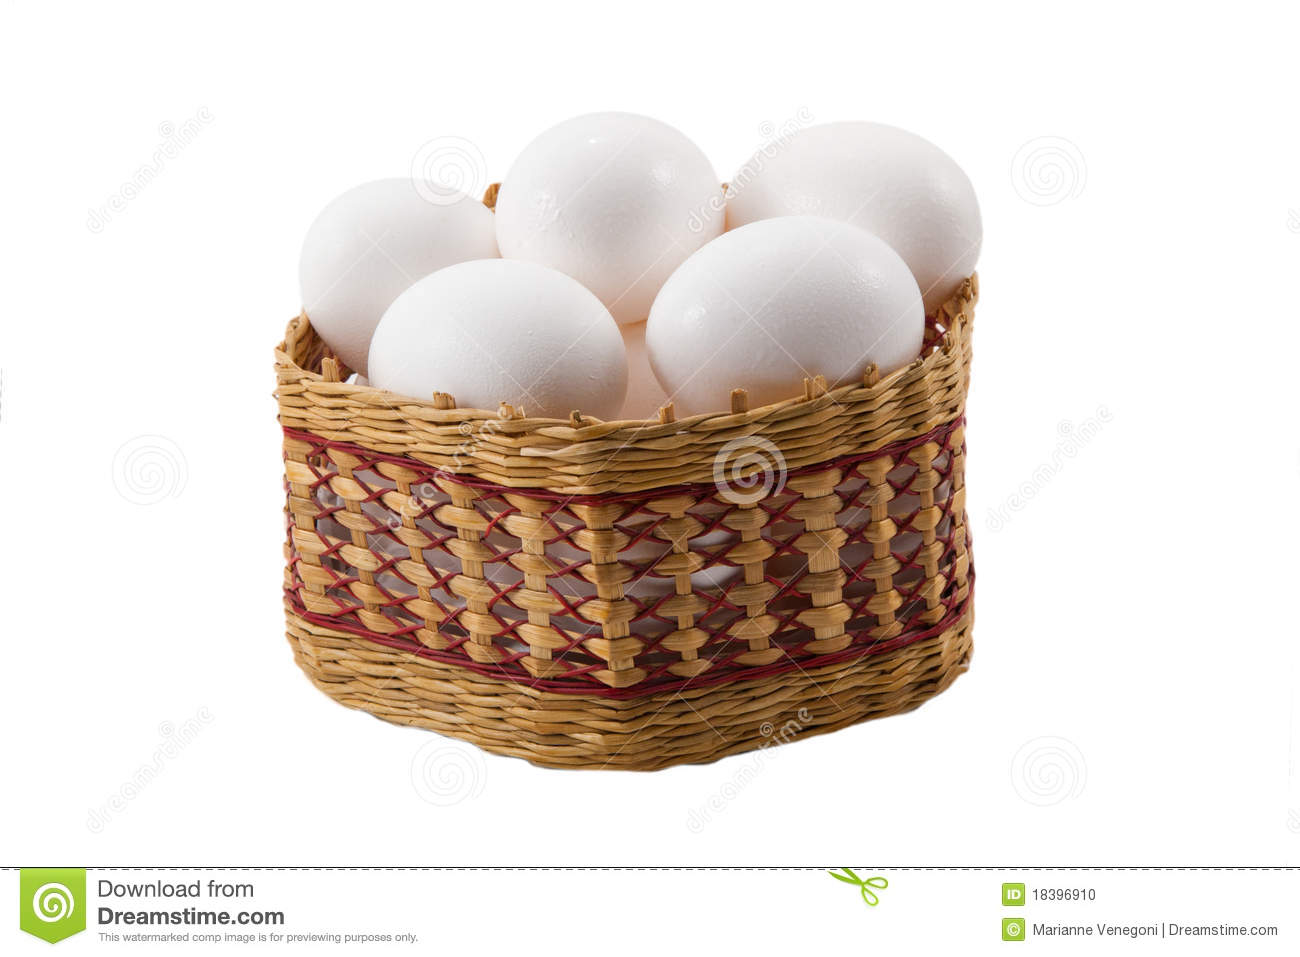 Eggs in a basket stock photo. Image of easter, nature ...